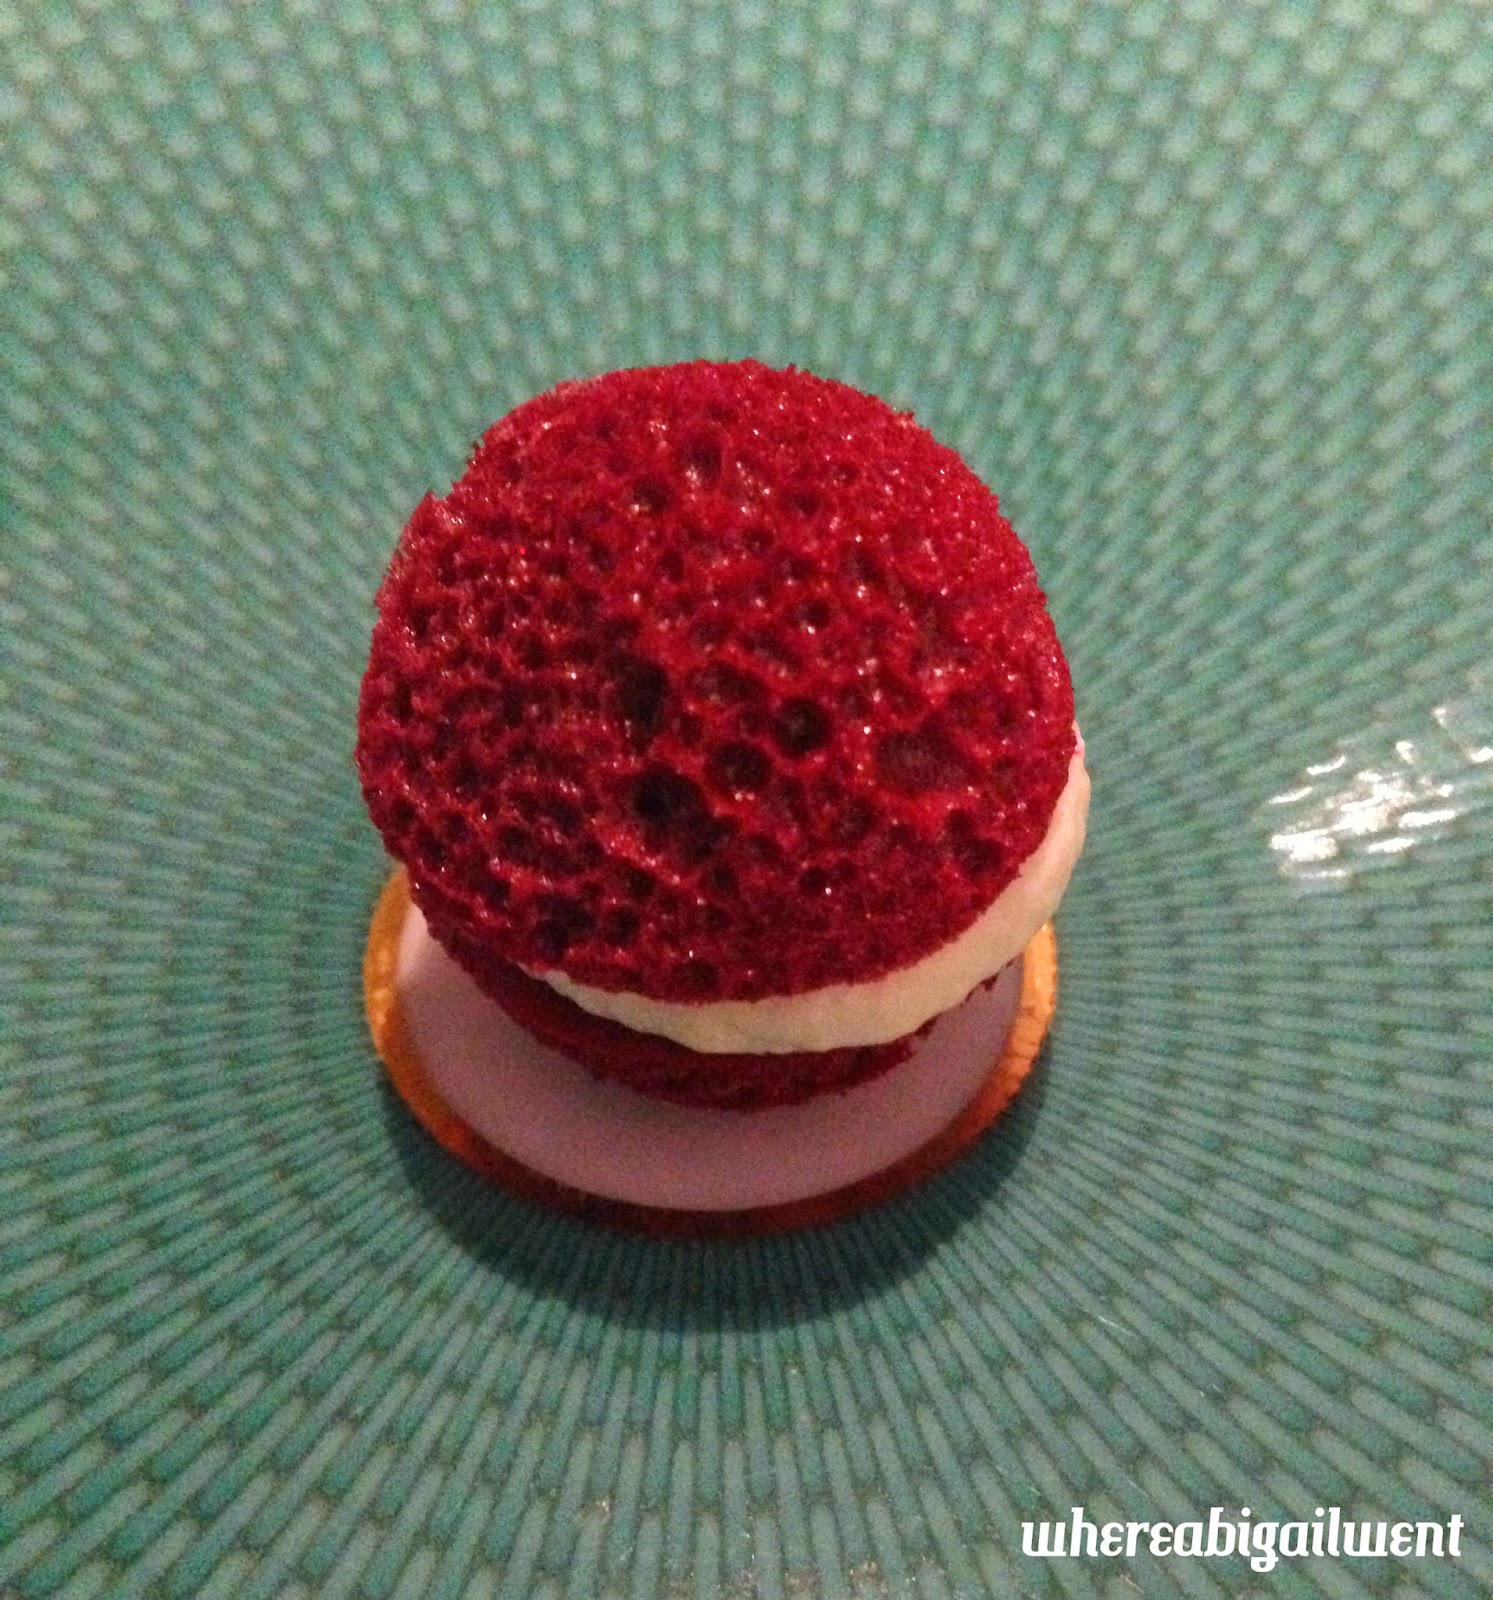 Aerated Beetroot with Horseradish Cream at the Fat Duck